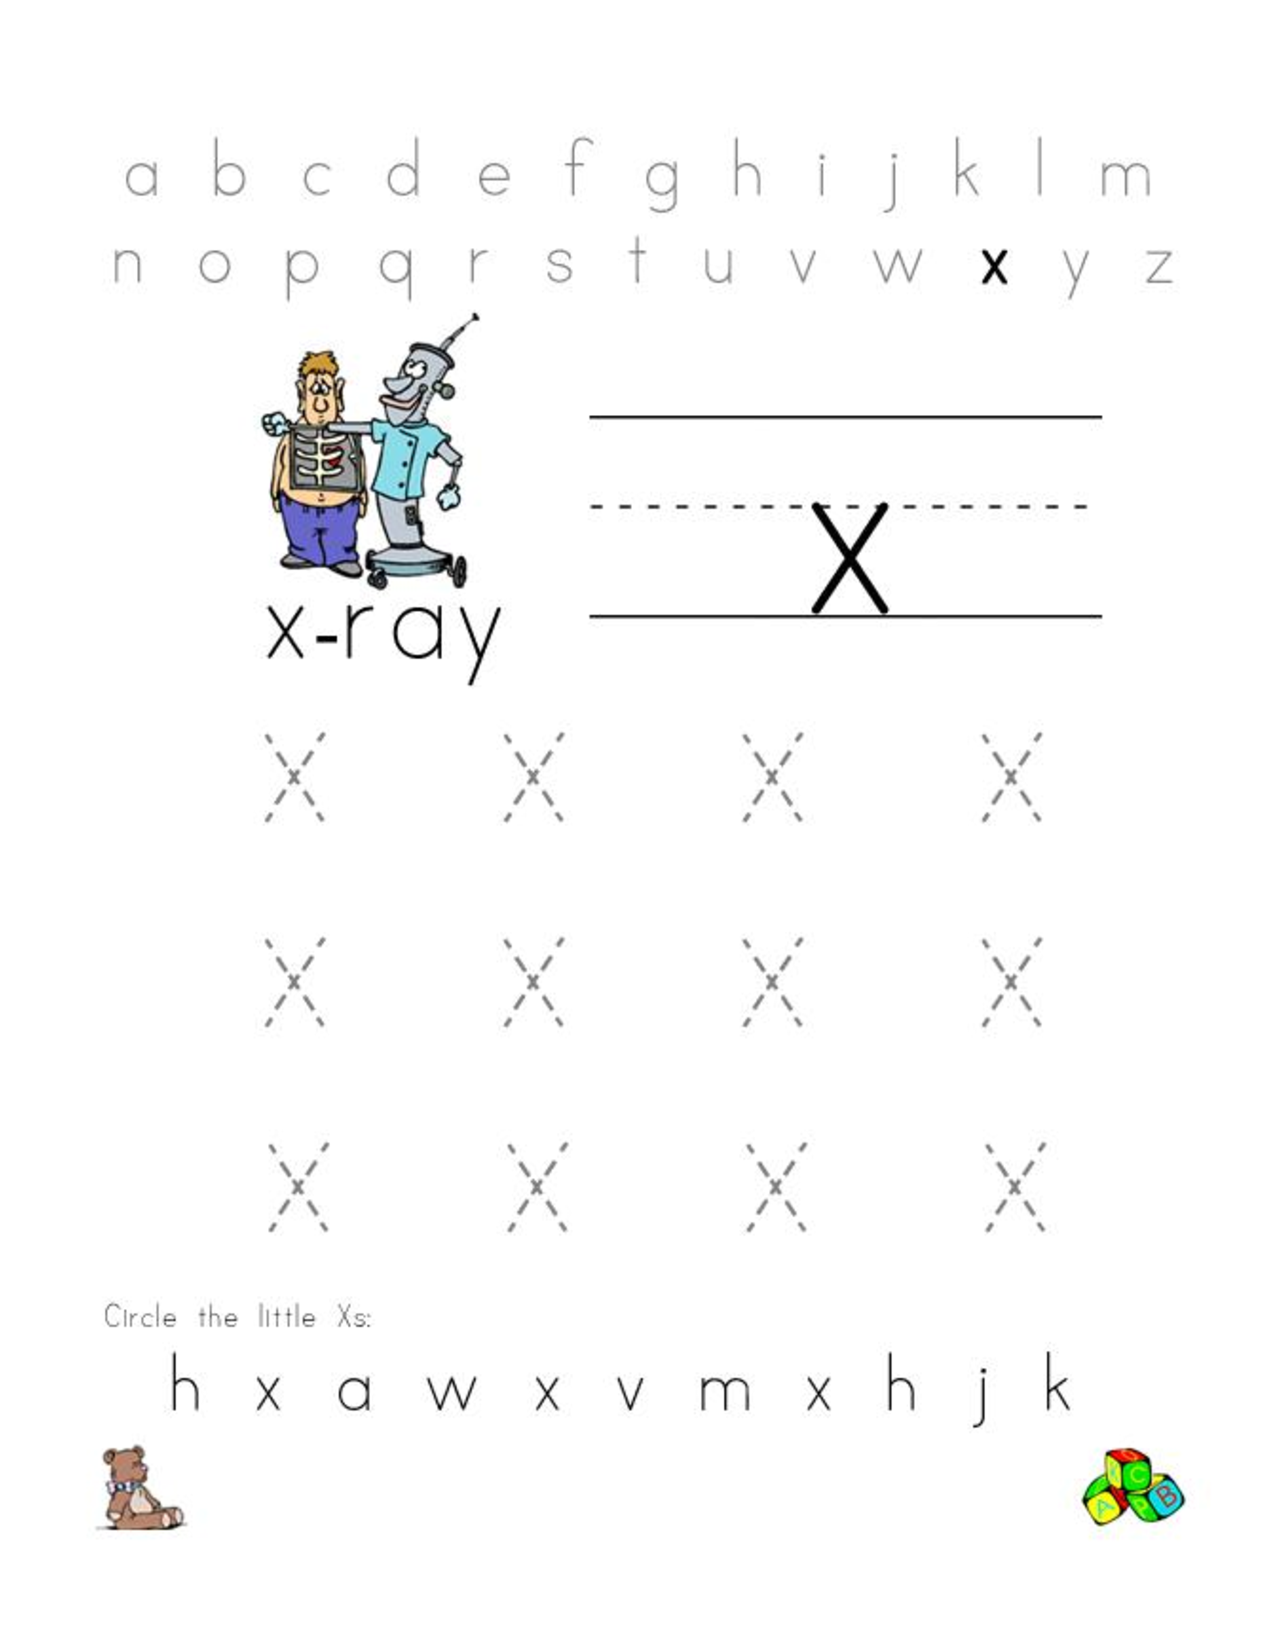 free letter x worksheets for preschool preschool crafts. Black Bedroom Furniture Sets. Home Design Ideas